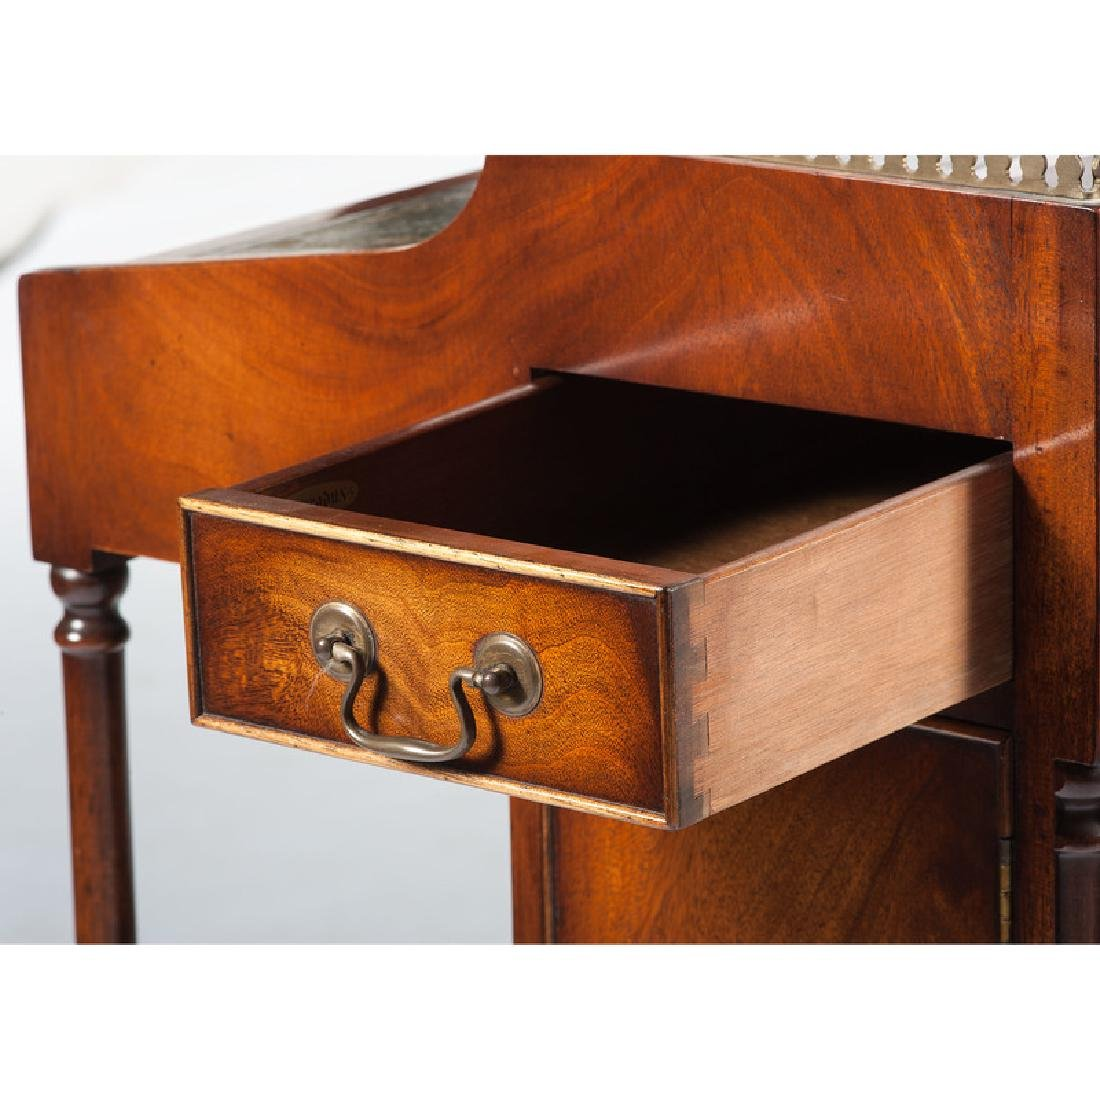 English Mahogany Desk with Stool - 7